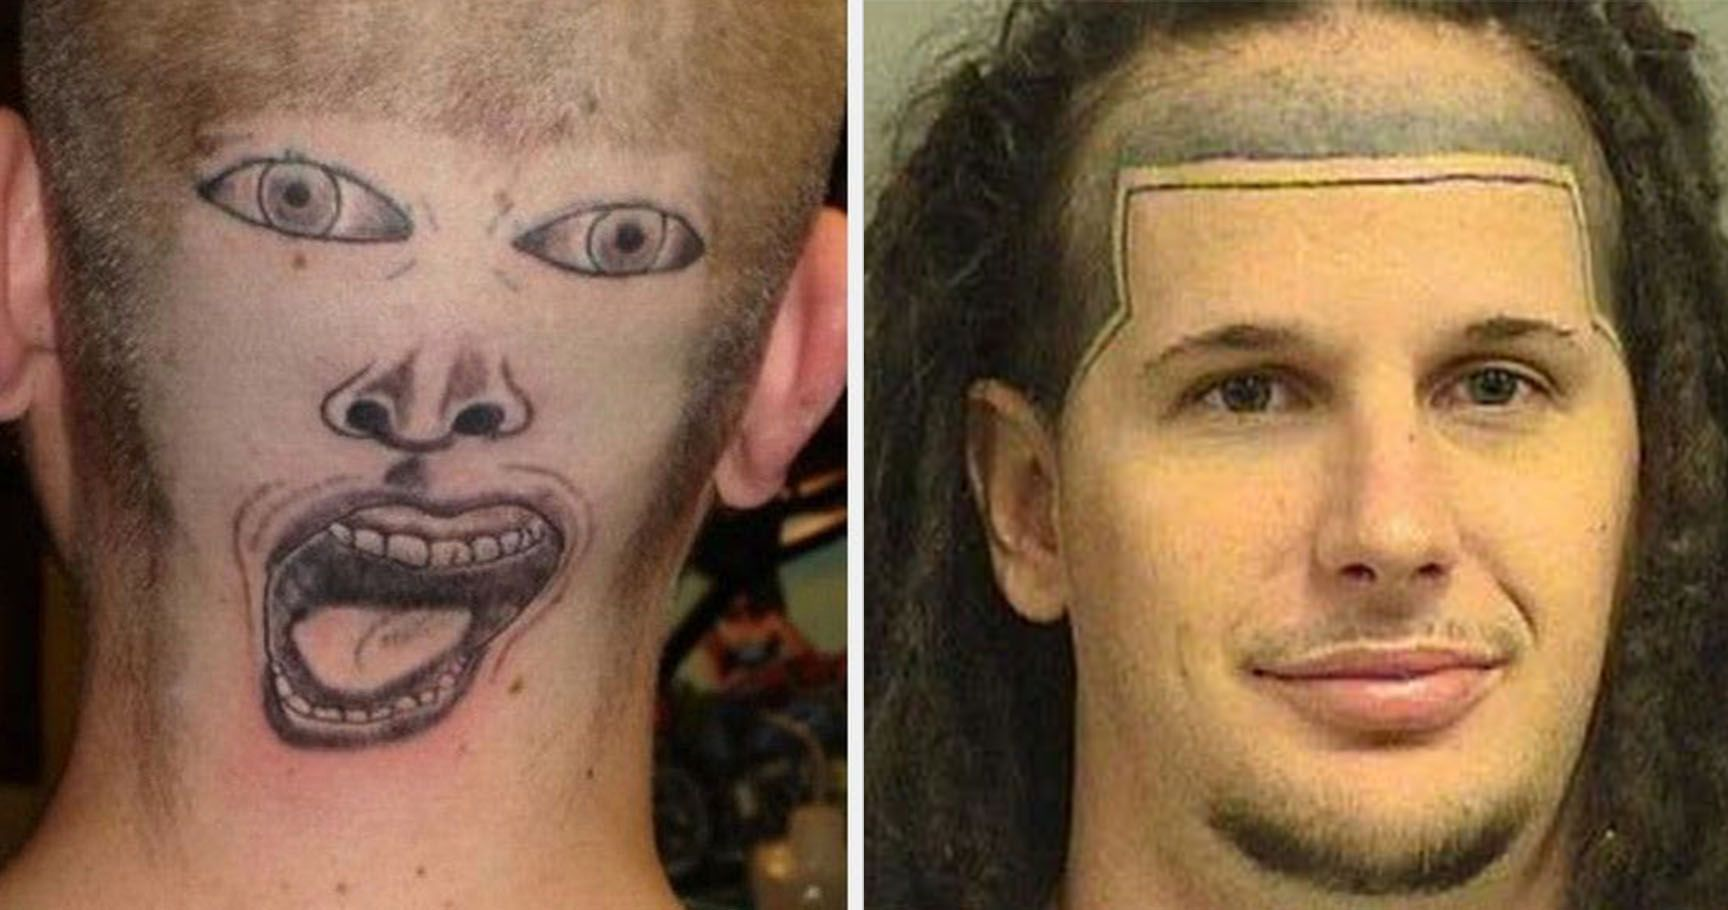 15 Tattoos No One Should Have Inflicted On Themselves